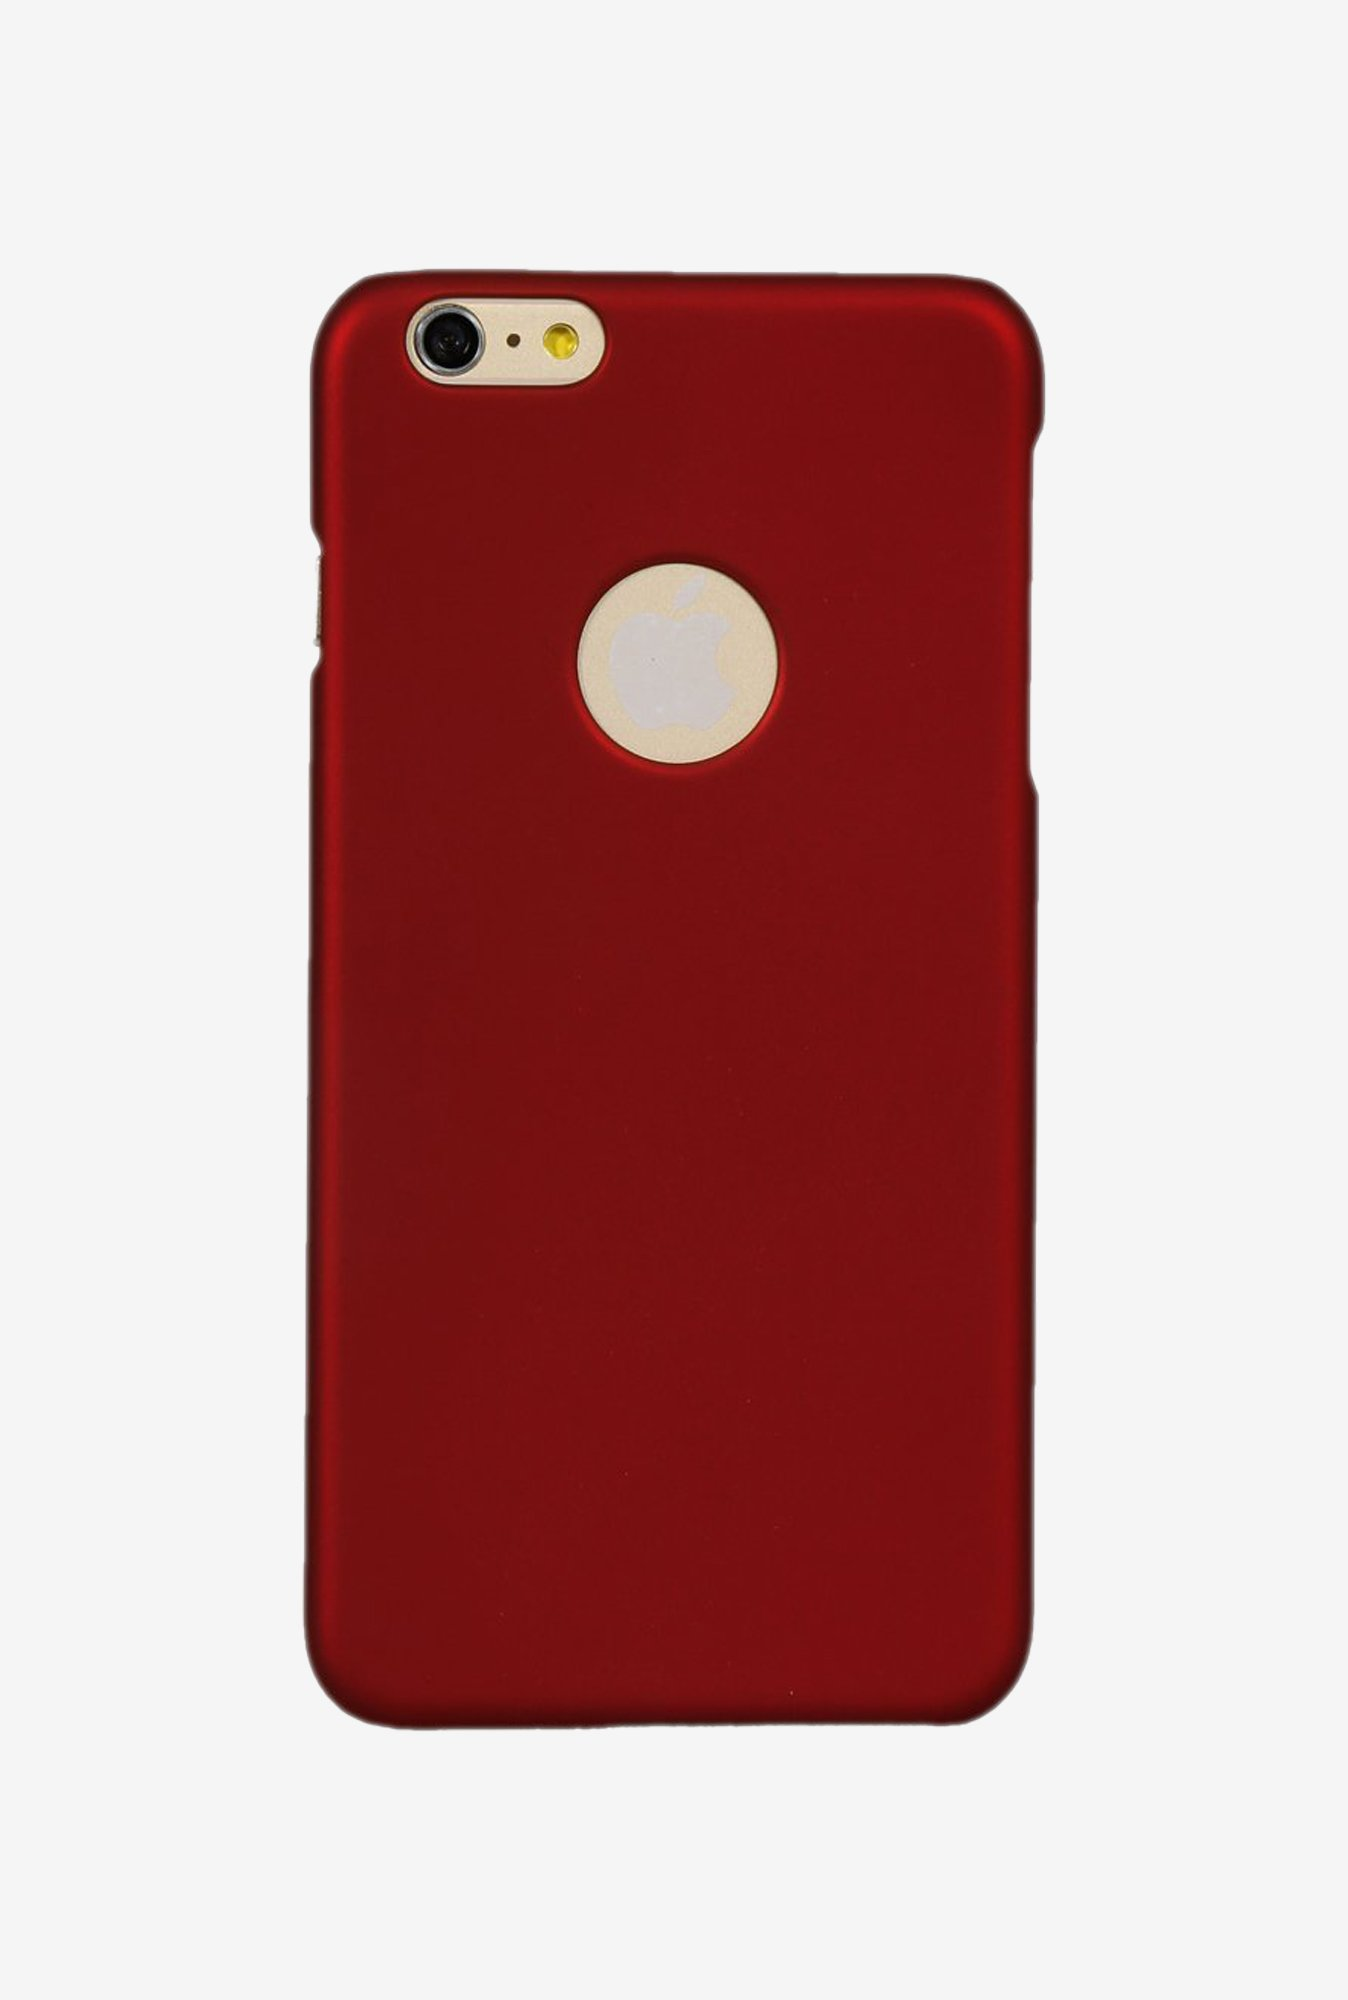 iAccy IP6P003 Cut out Hard Rubber Case Maroon for iPhone 6+